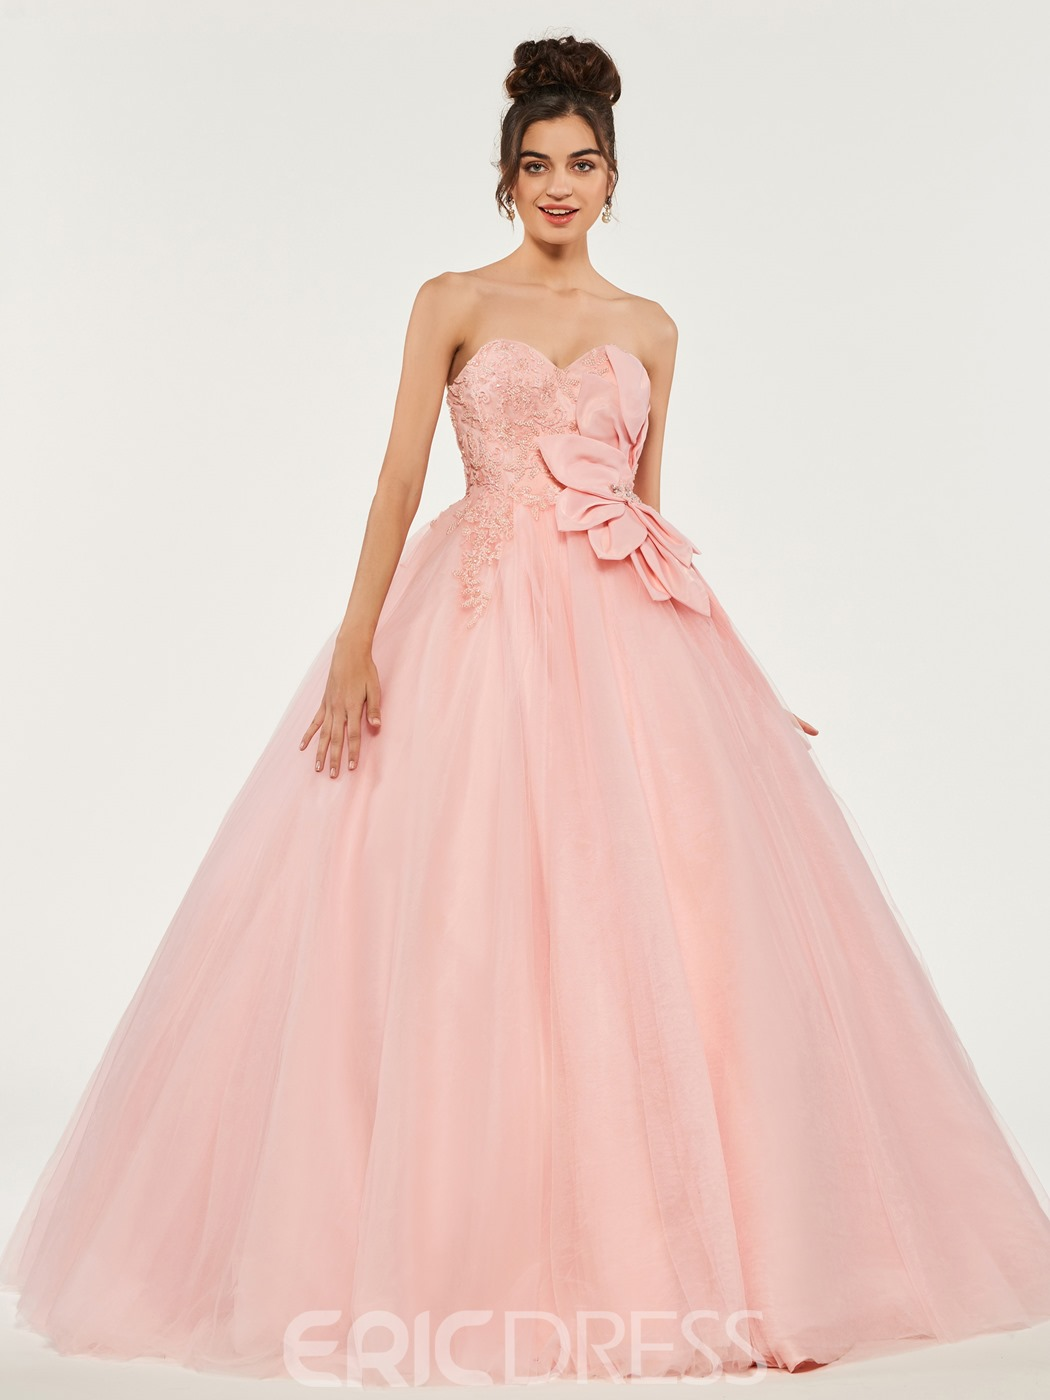 Ericdress Sweetheart Applique Beaded Ball Quinceanera Dress With Lace-Up Back